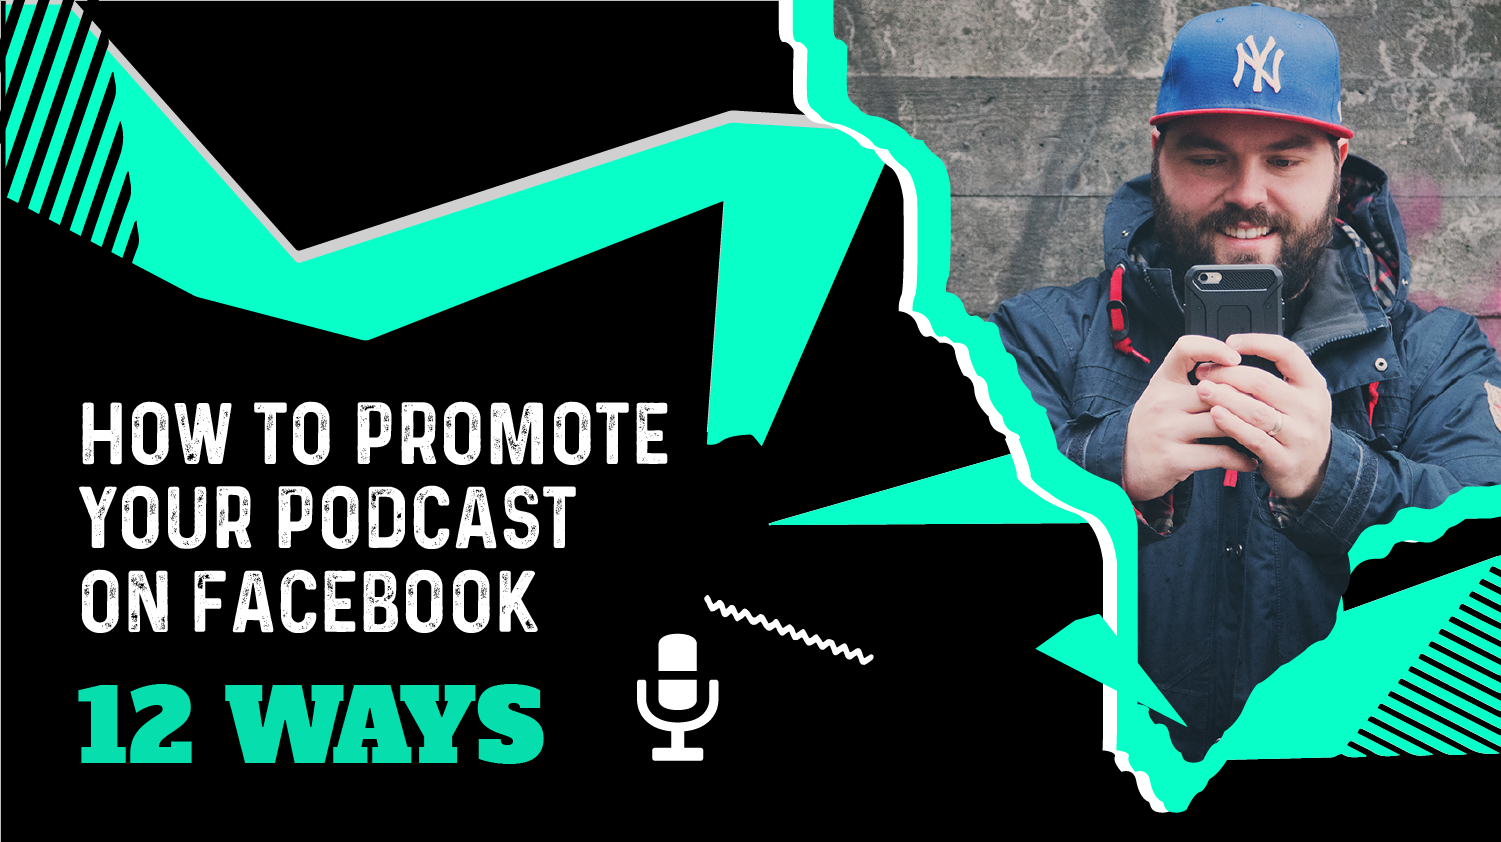 How to Promote Your Podcast on Facebook: 12 Ways